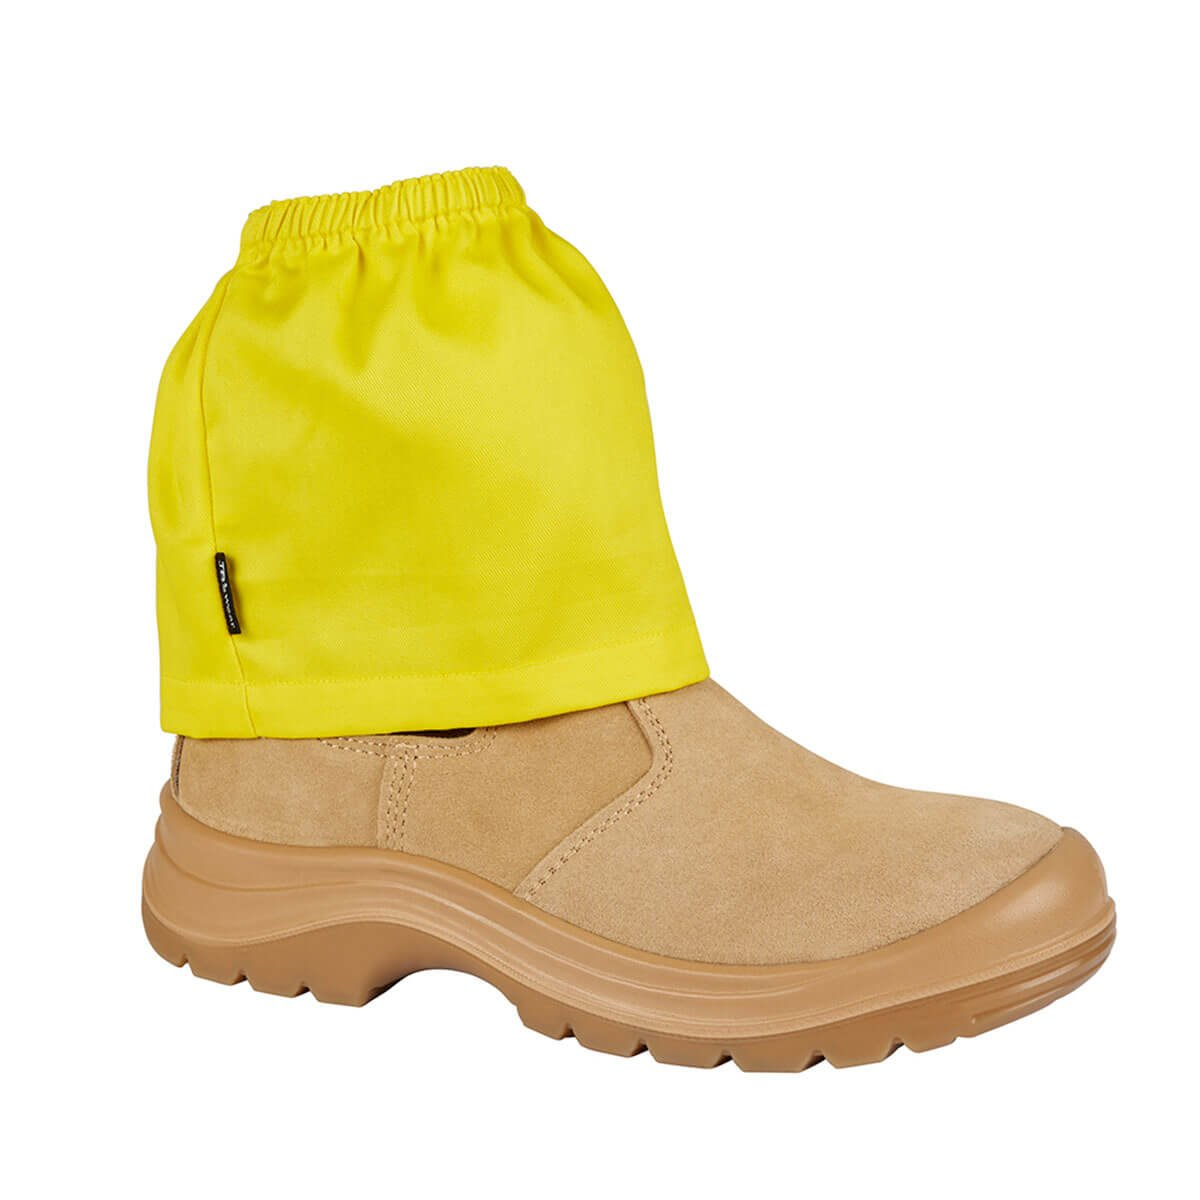 Boot Cover-Yellow